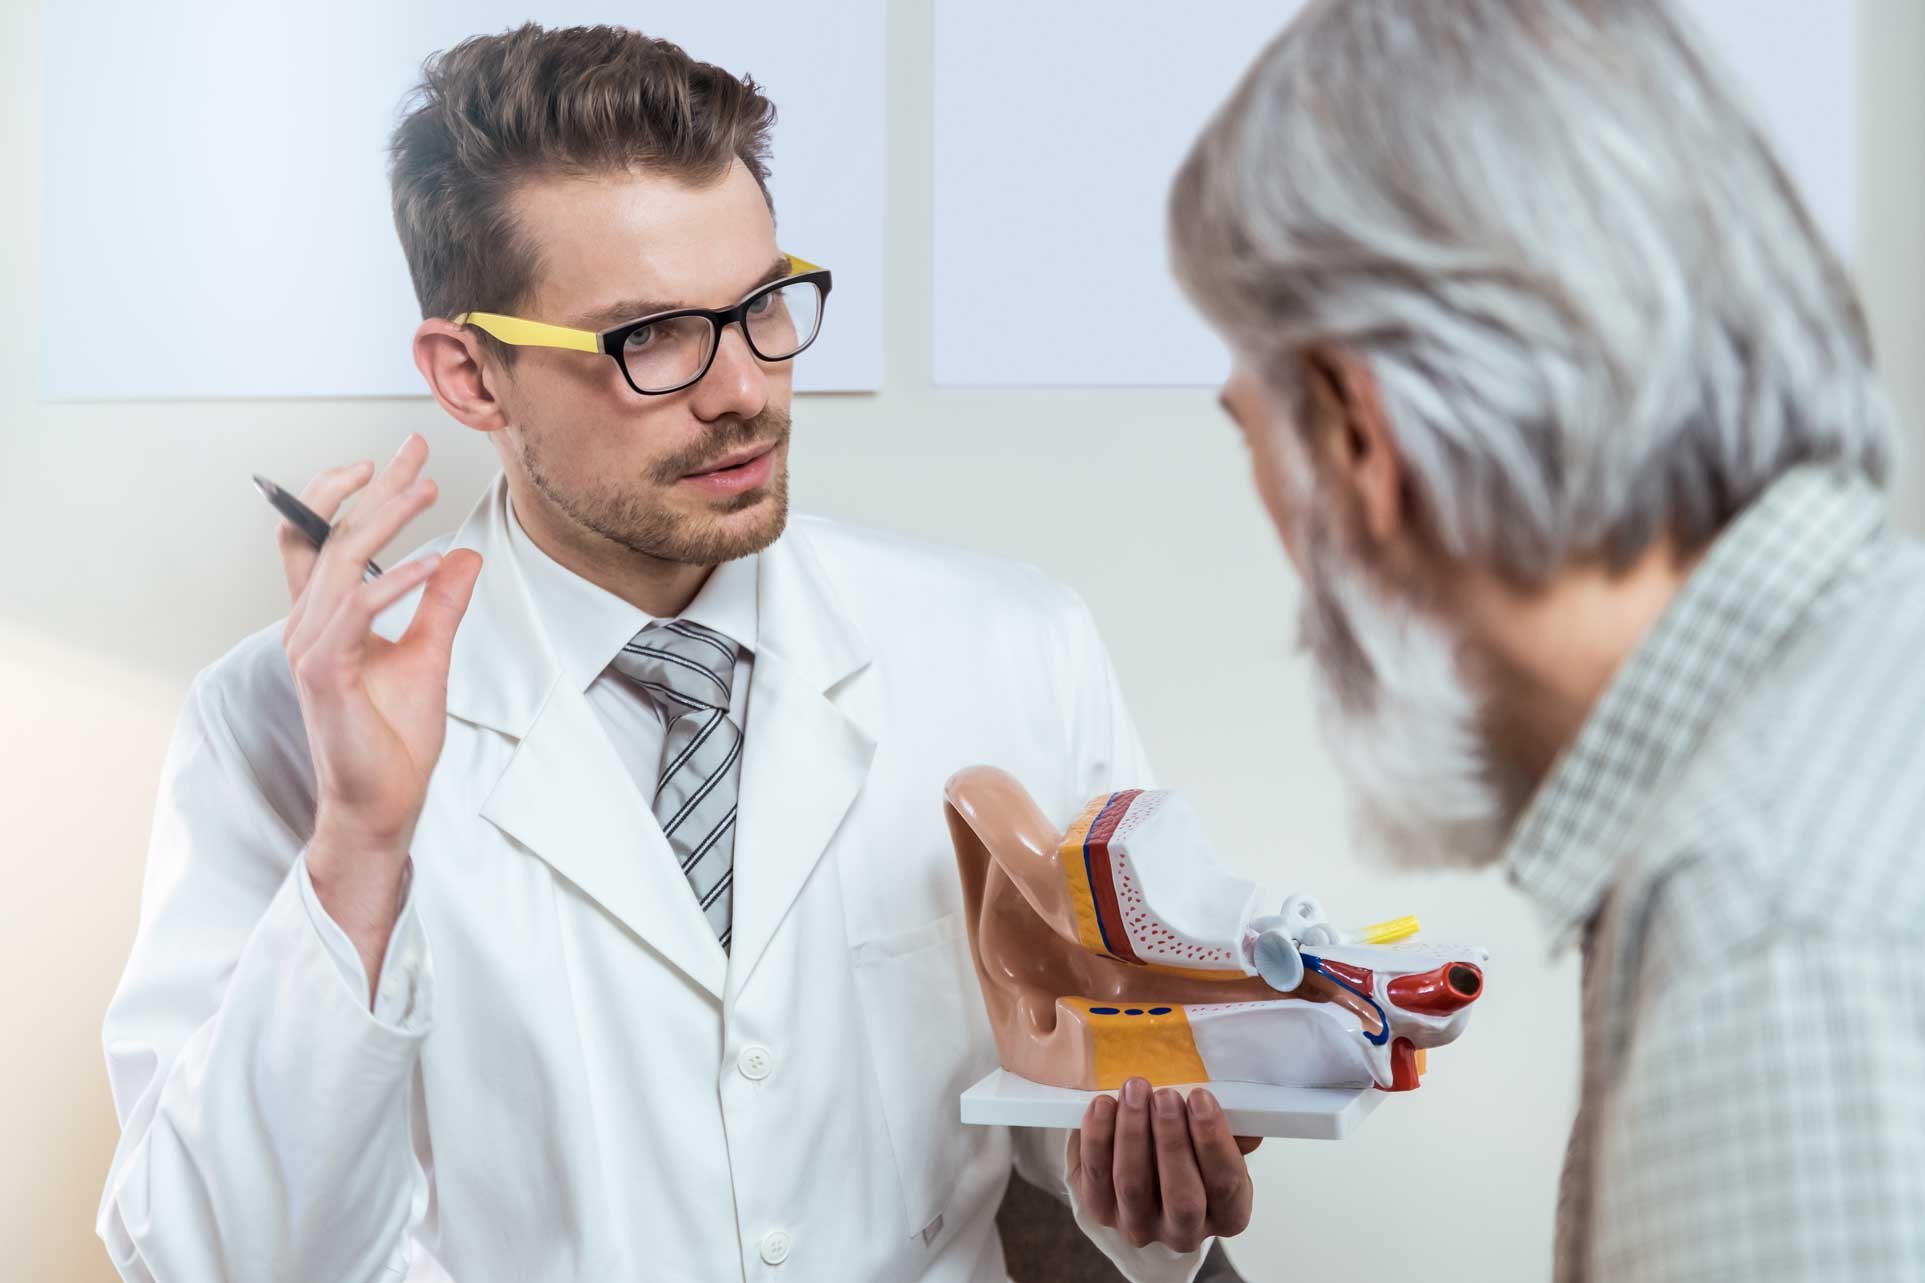 audiologist holding model of ear and talking to patient